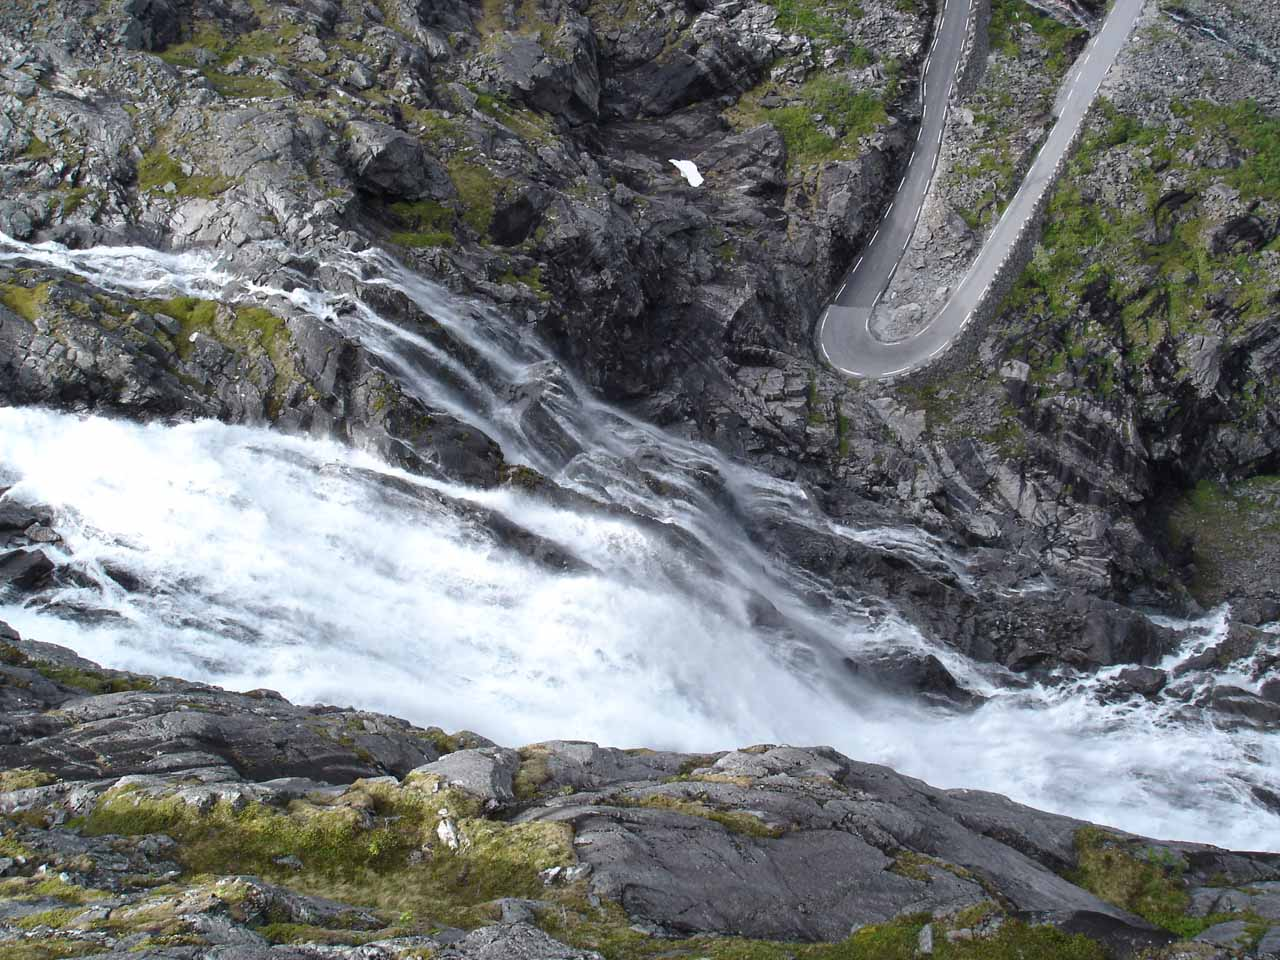 Looking down at part of Stigfossen tumbling besides a switchback